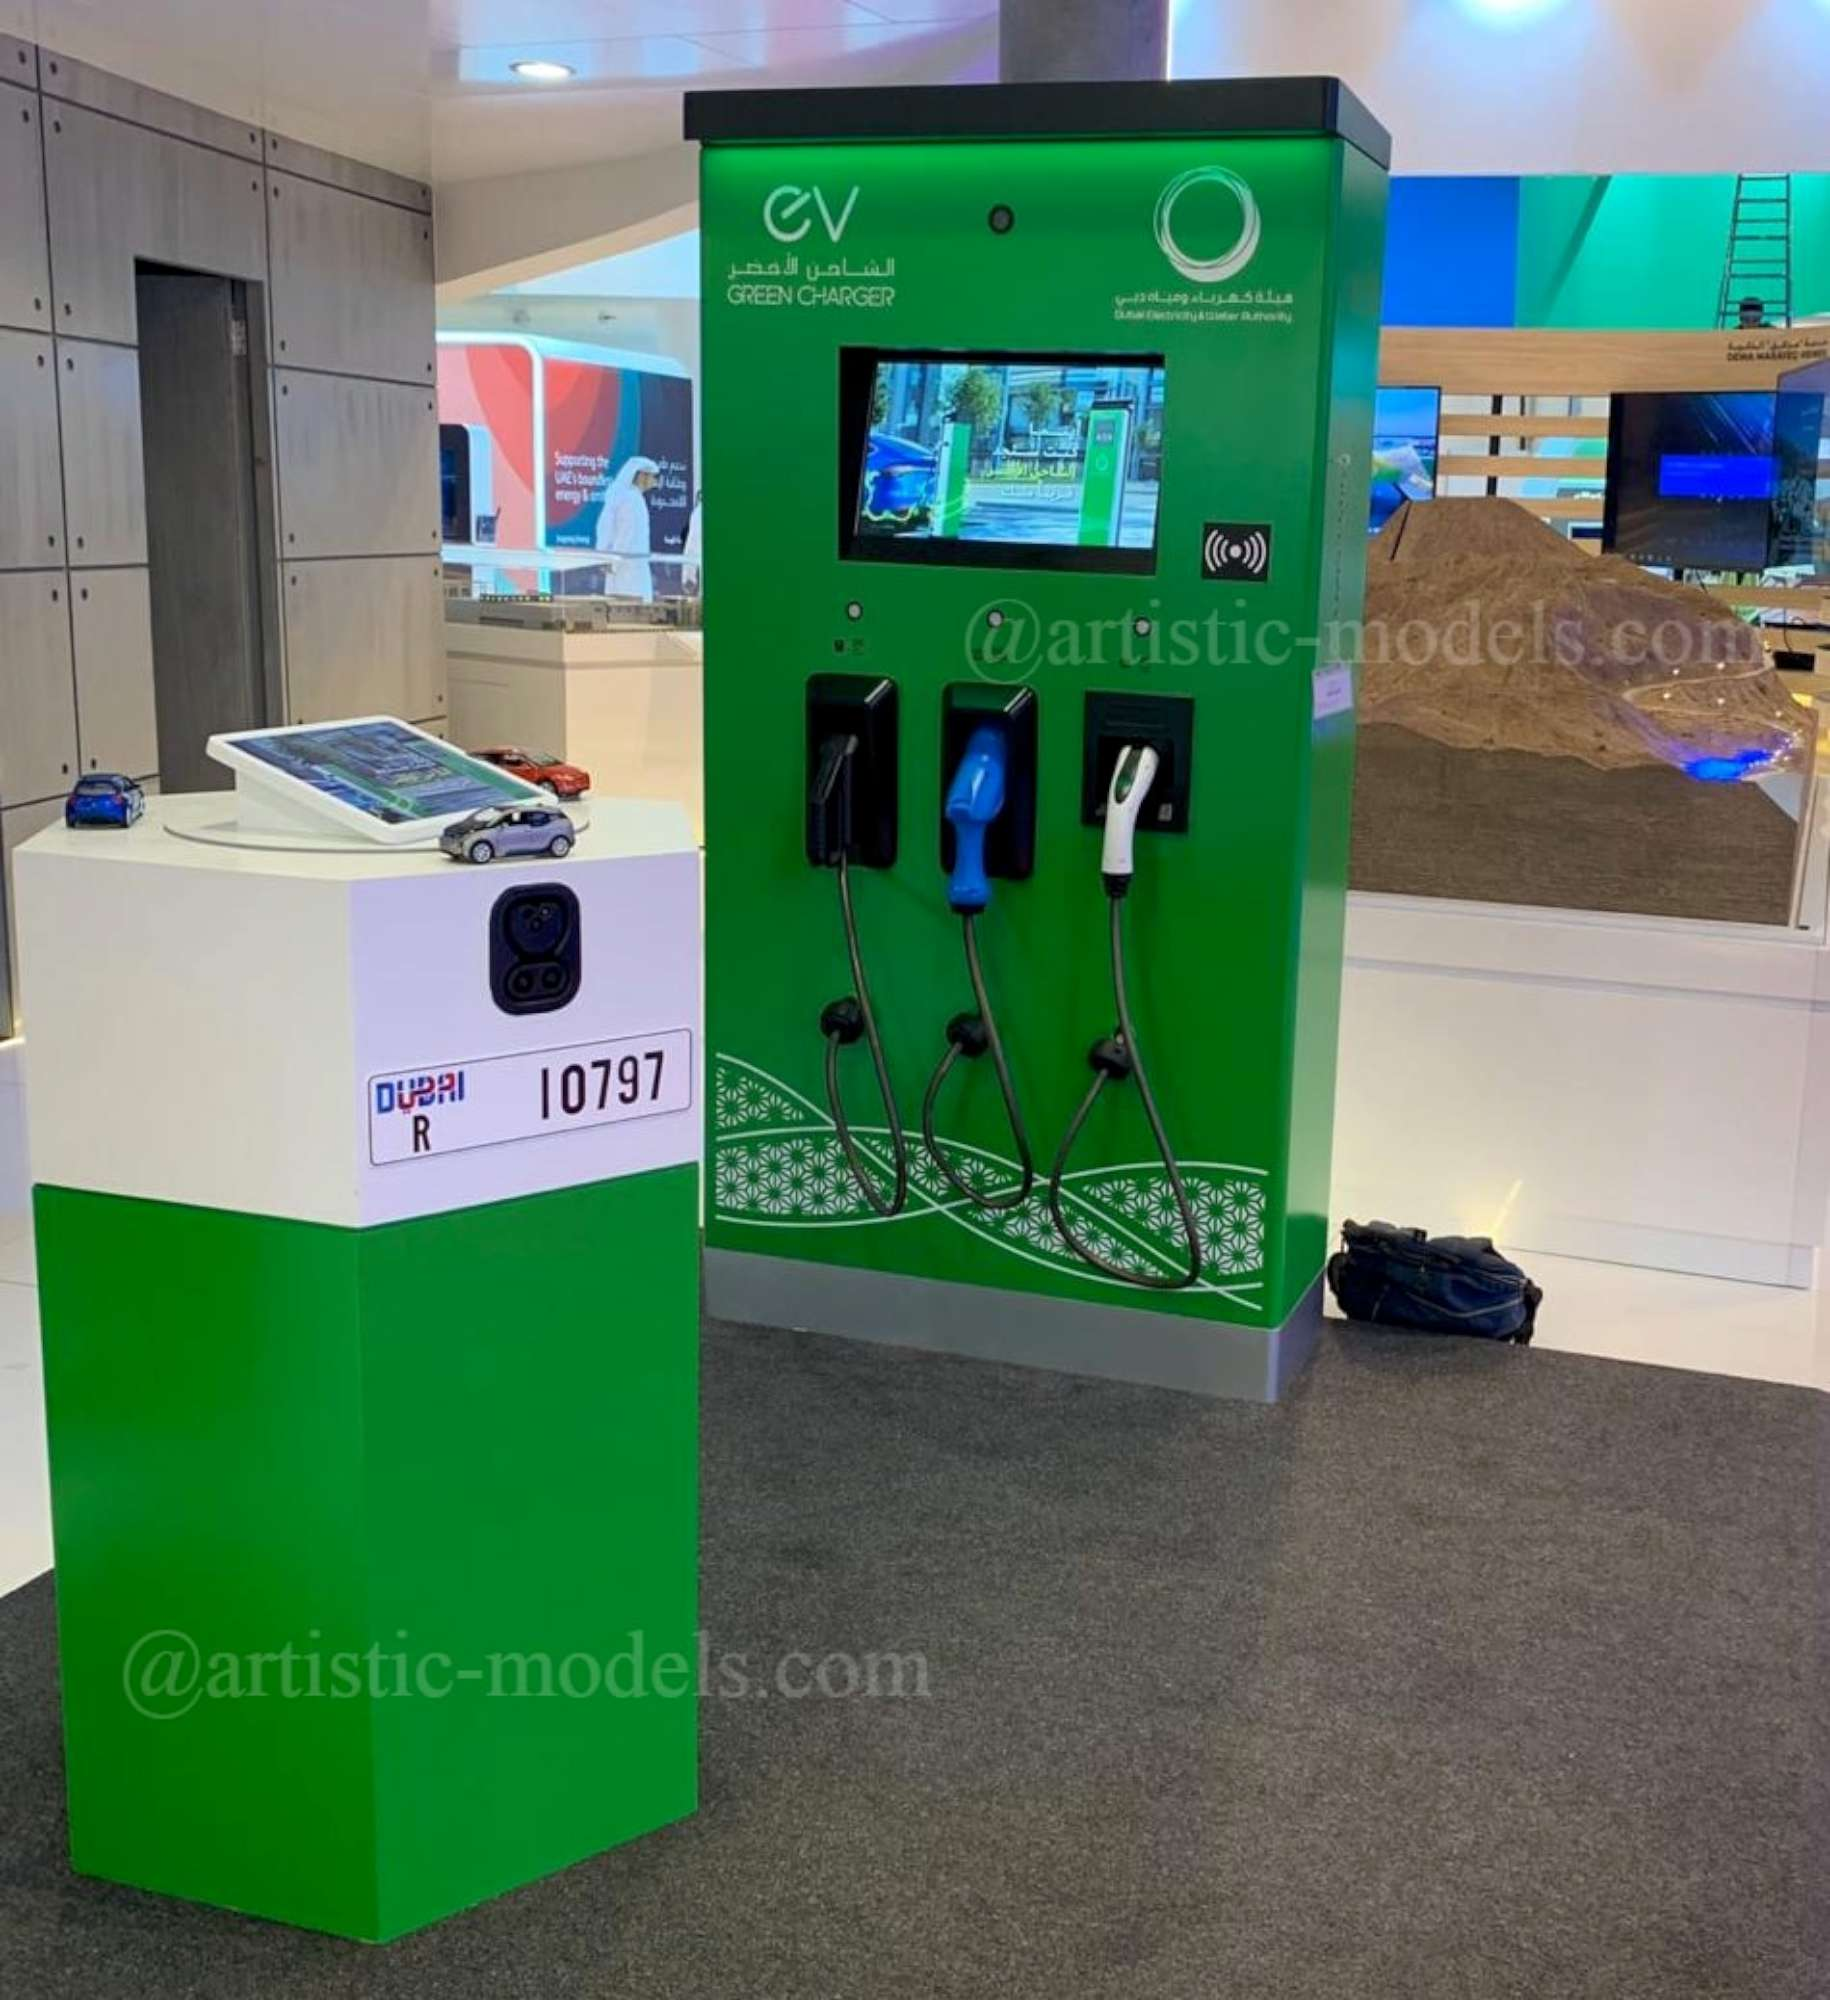 Interactive Scale Model of EV Green Charger